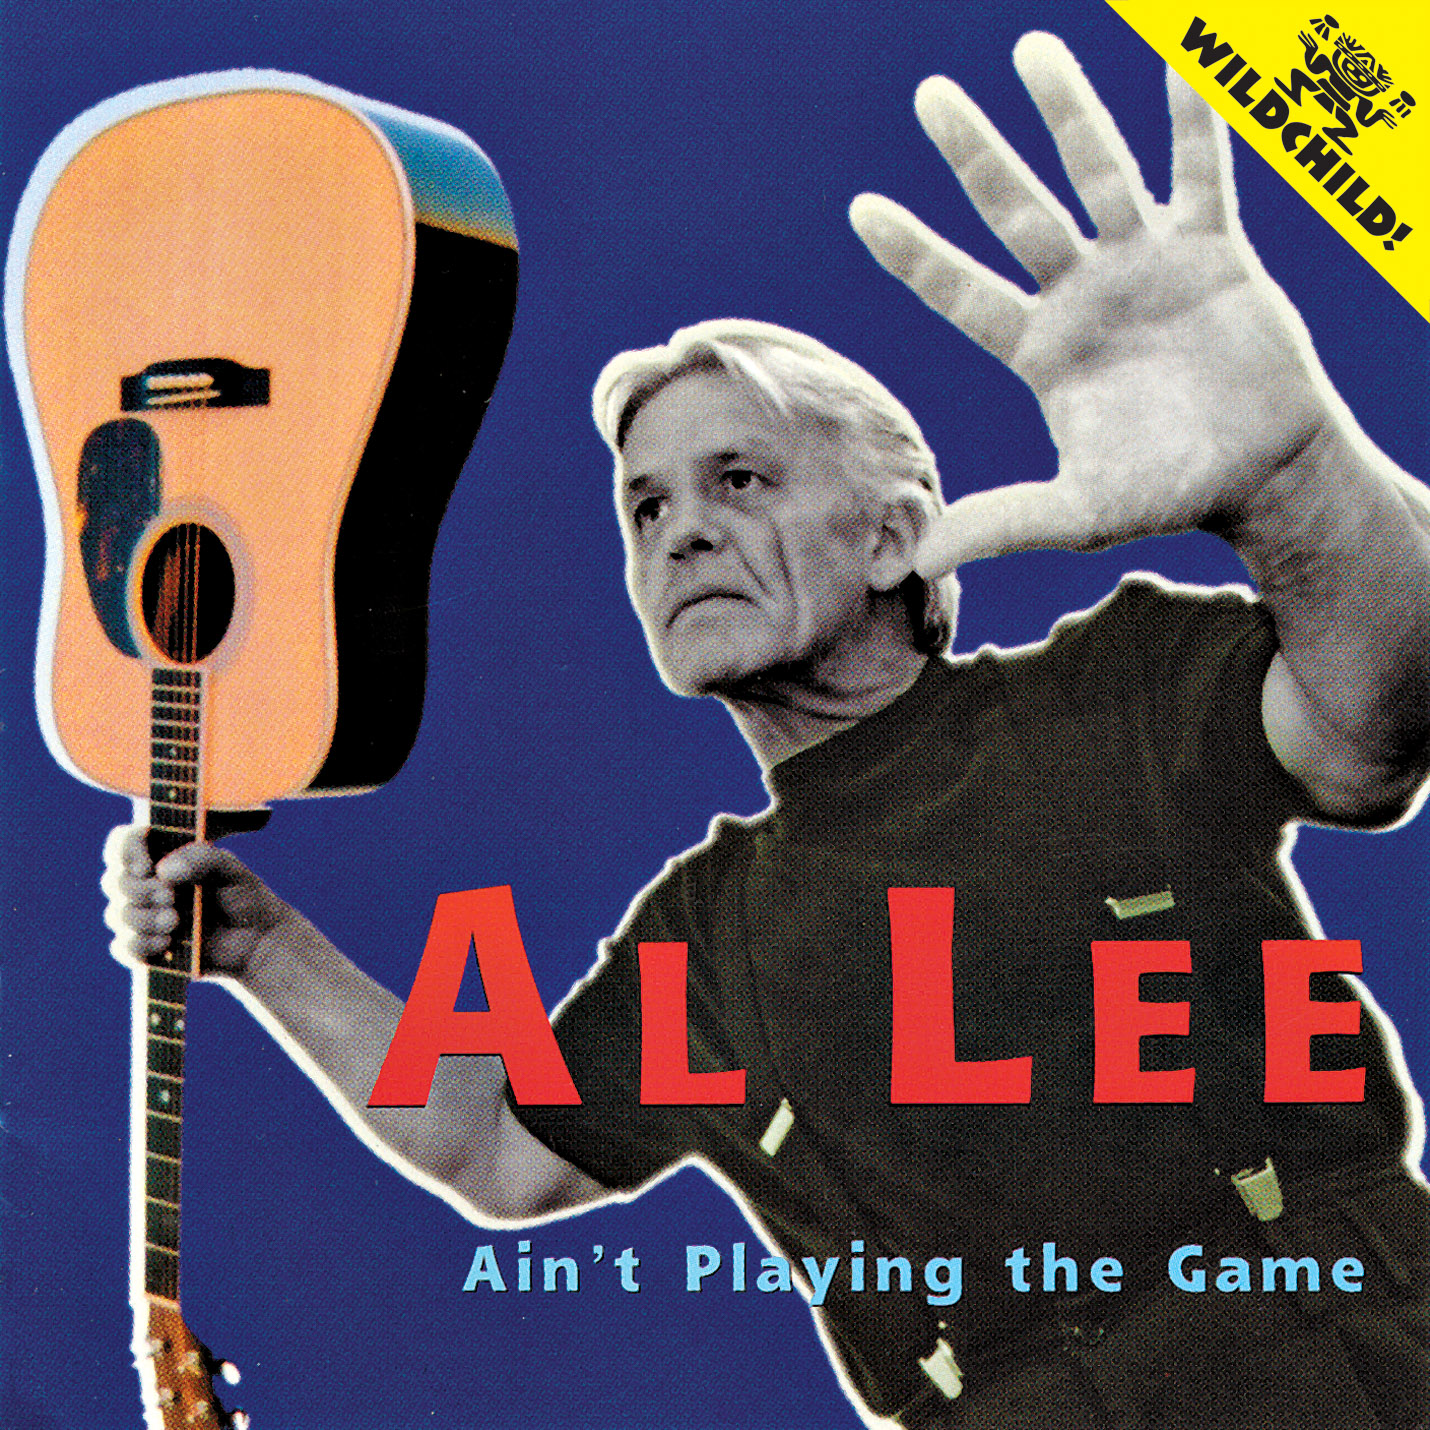 Al Lee: Ain't Playing the Game